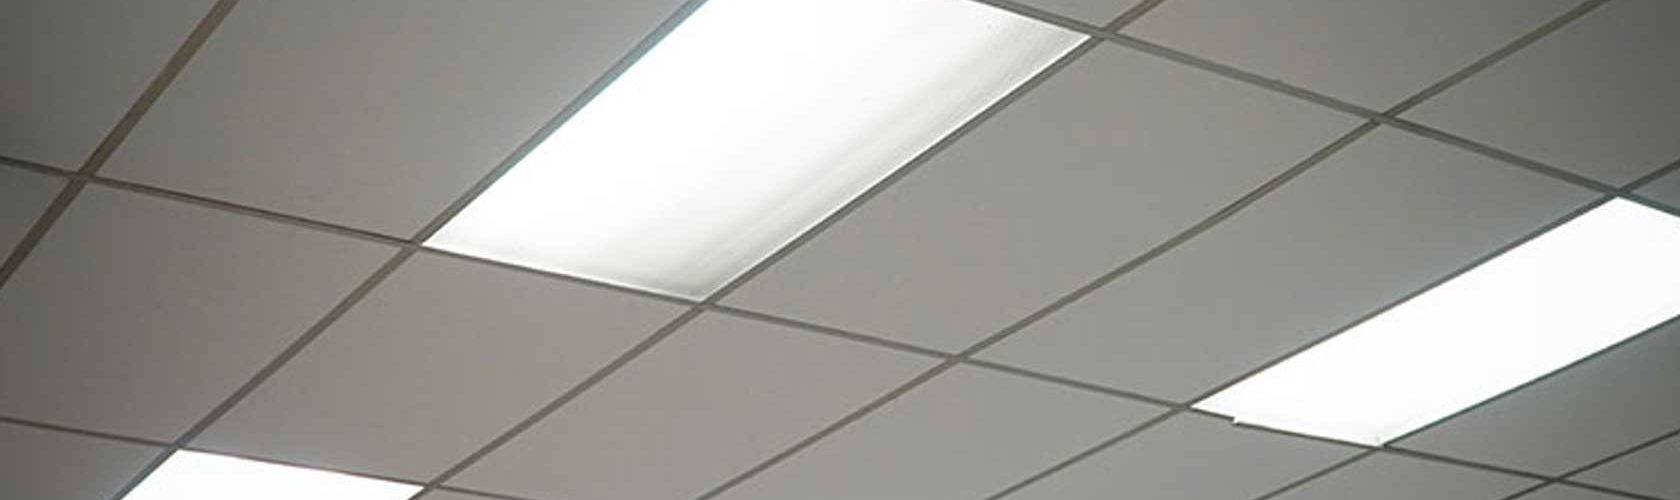 LED panels in your office